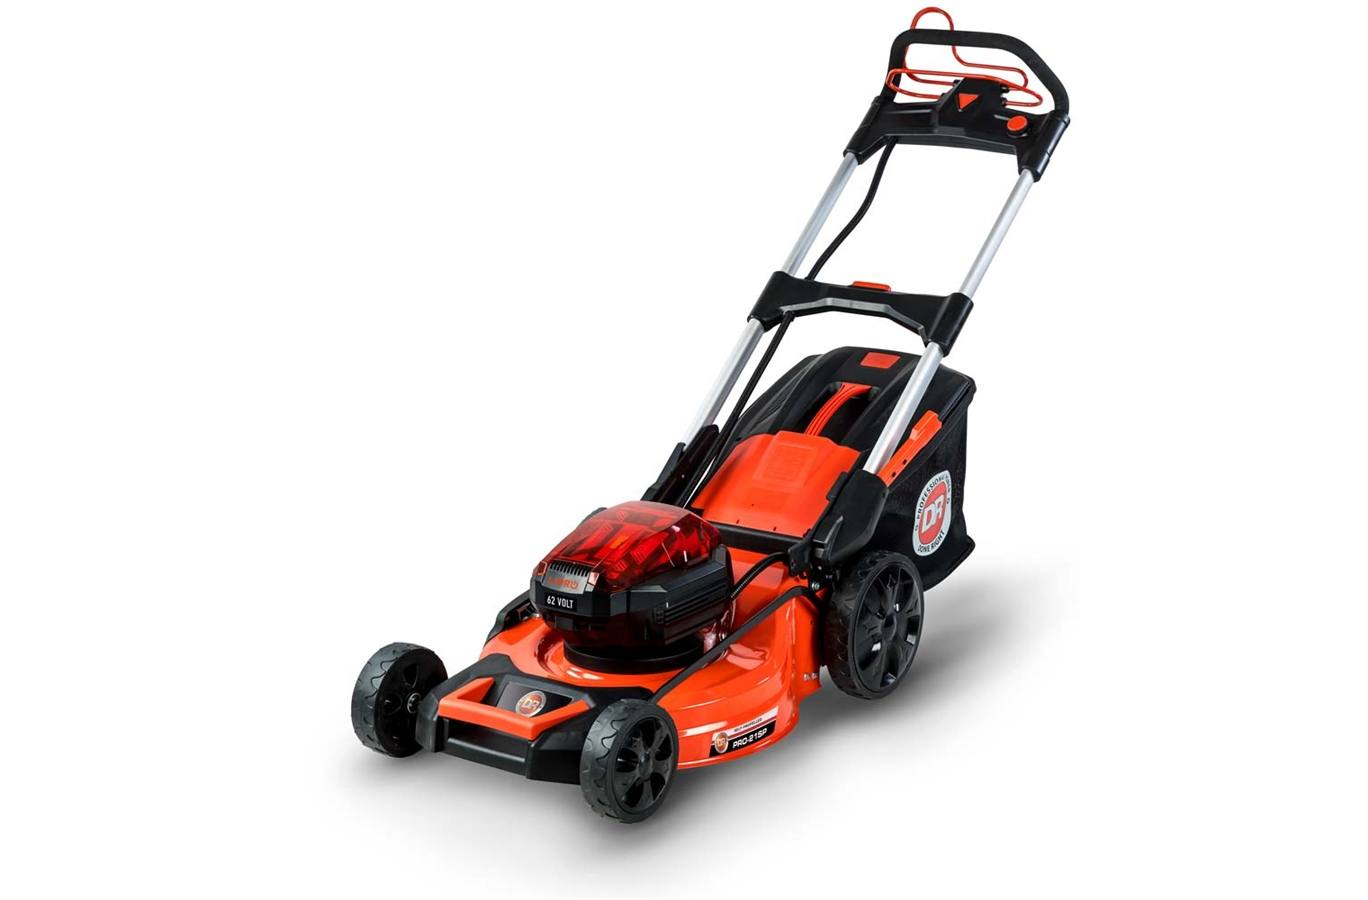 424140 DR 62V Battery-Powered Lawn Mower w/2 Batteries